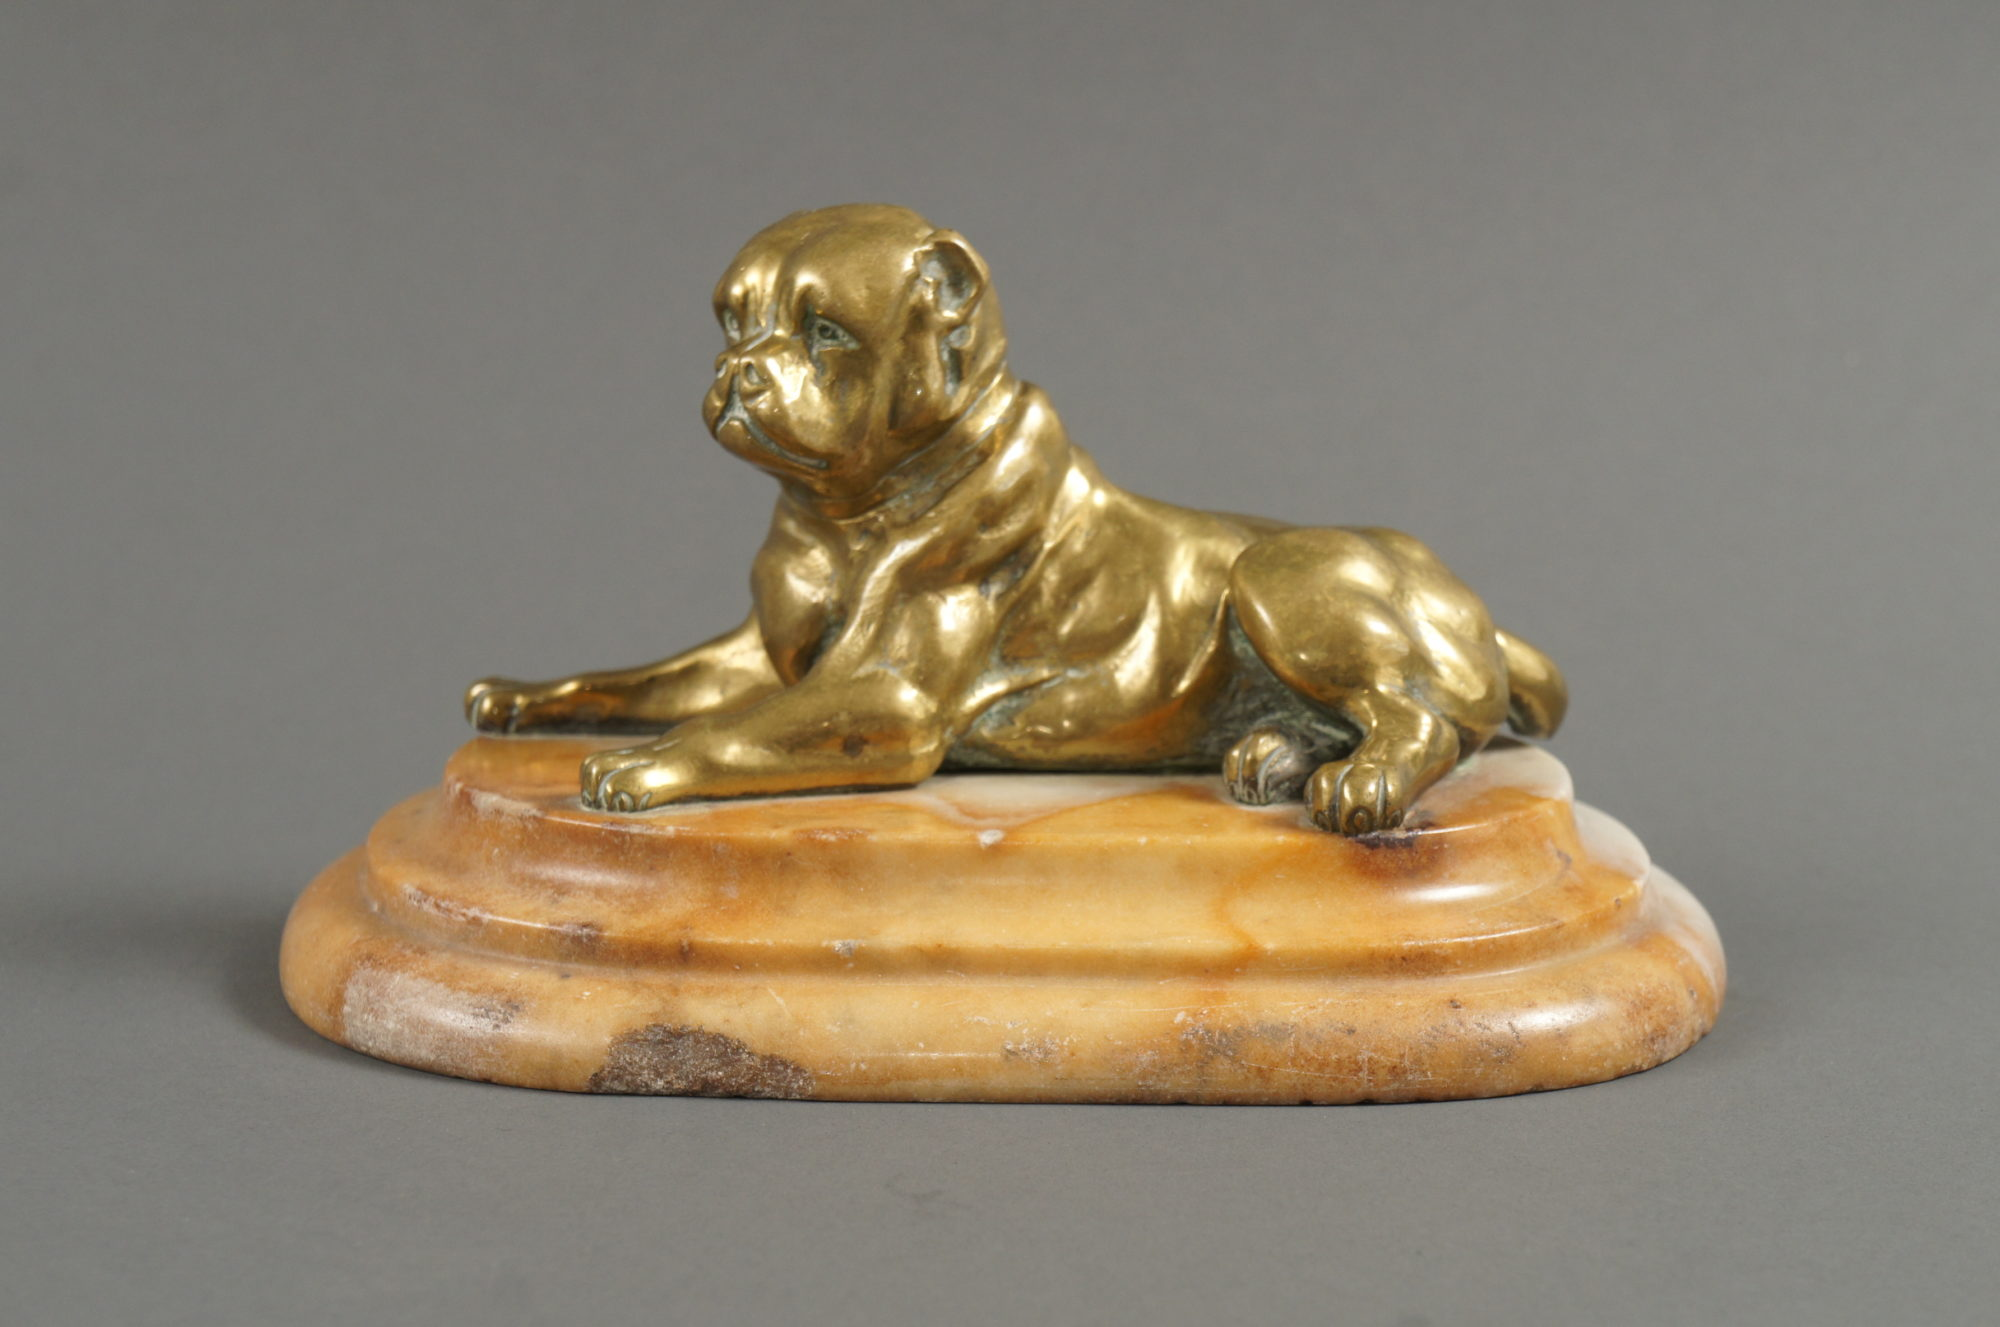 French Bronze Sculpture of a Dog